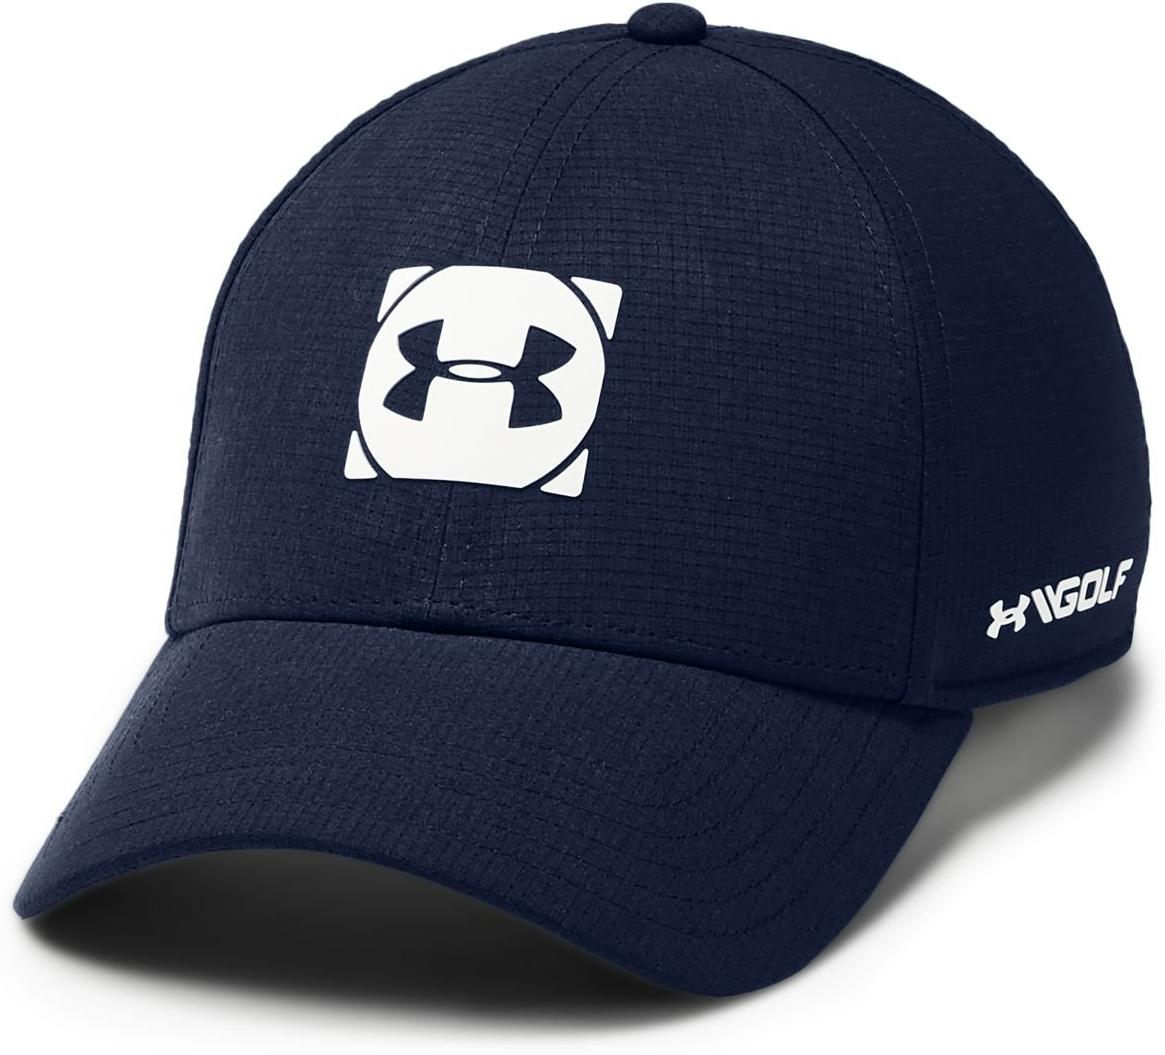 Under Armour Under Armour Men s Official Tour Cap 3.0 Baseball sapka